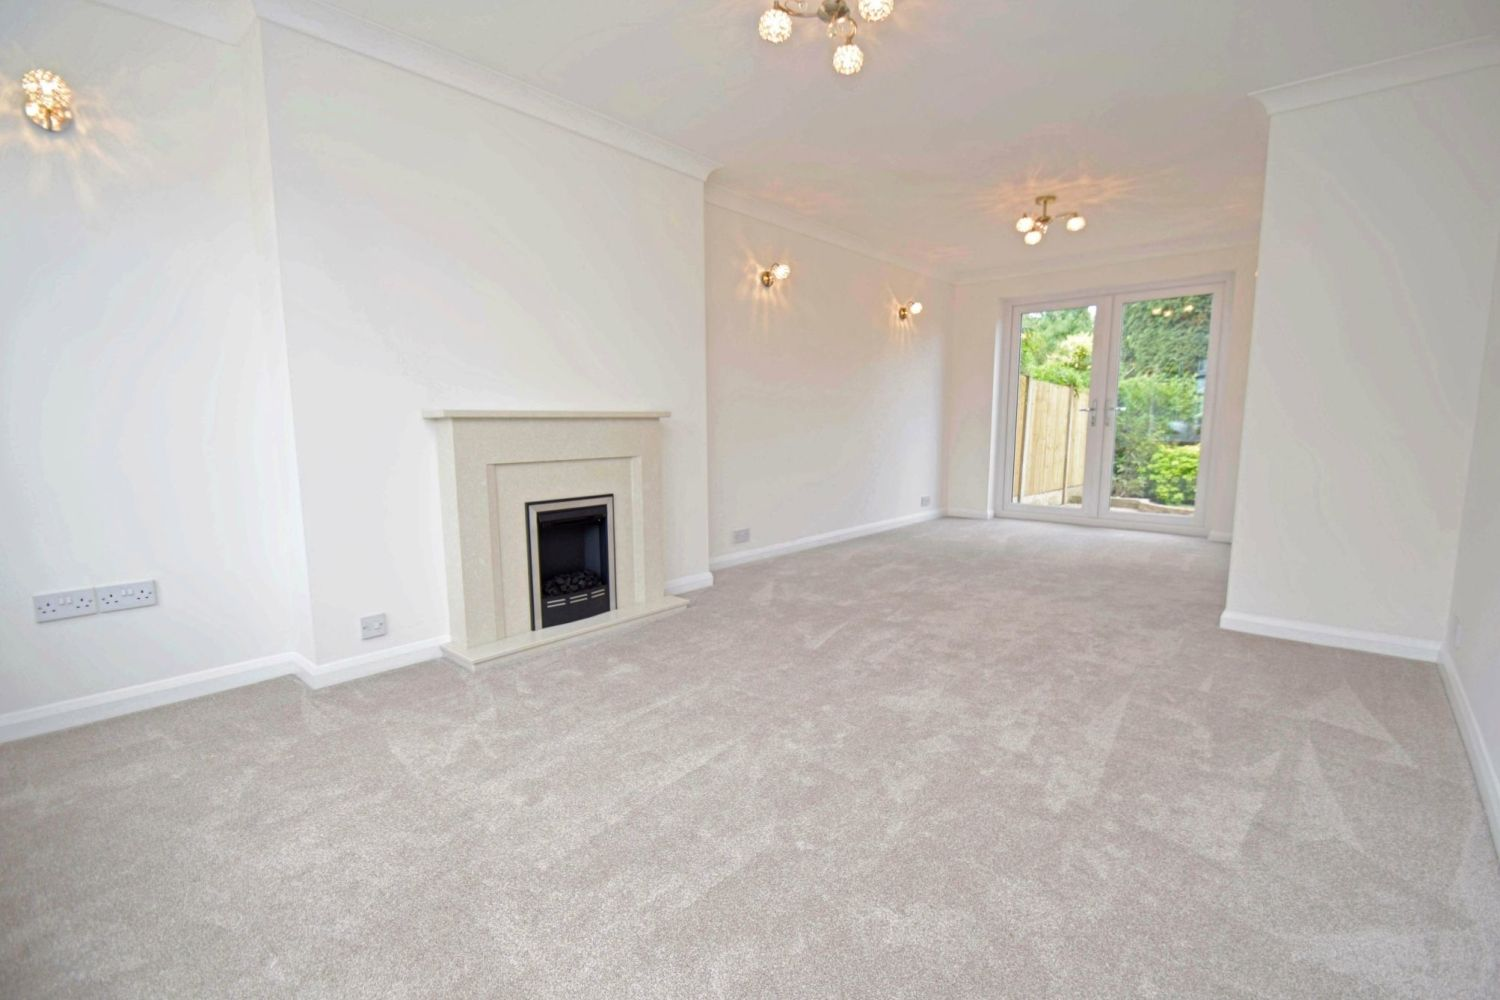 3 bed semi-detached for sale in Beachcroft Road, Wall Heath 2